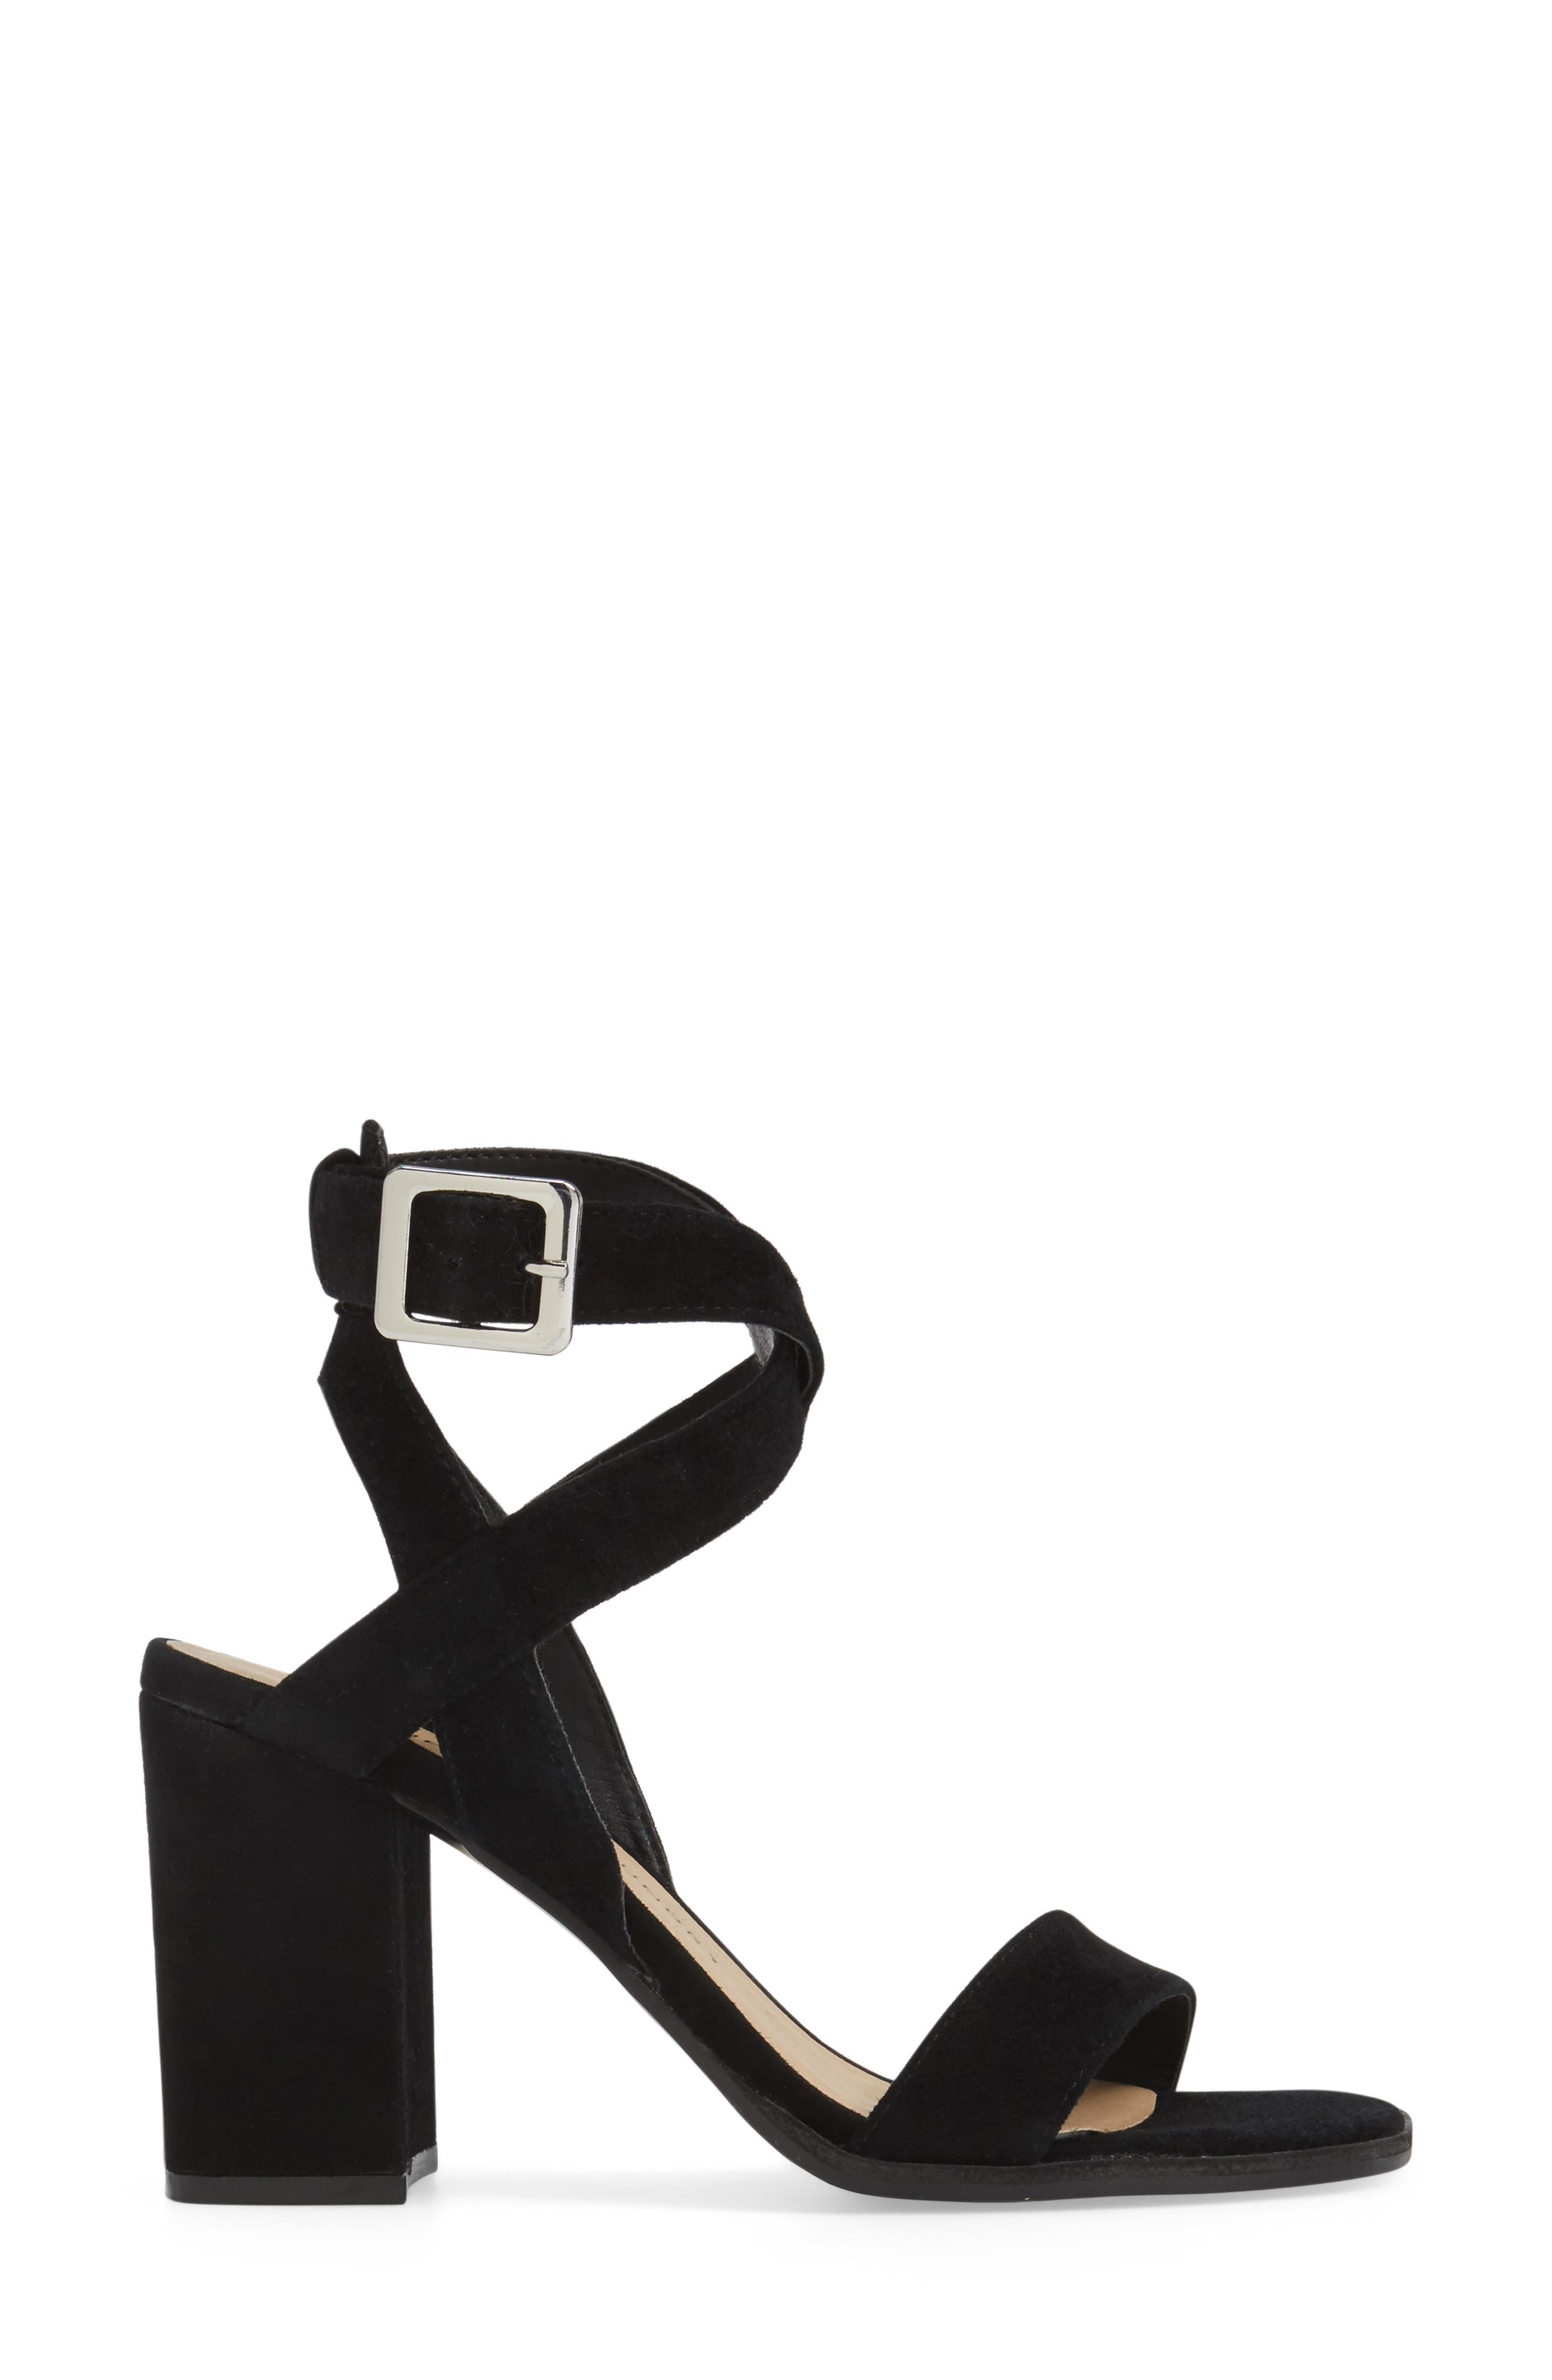 Sitara Ankle Strap Sandal,                             Alternate thumbnail 3, color,                             001